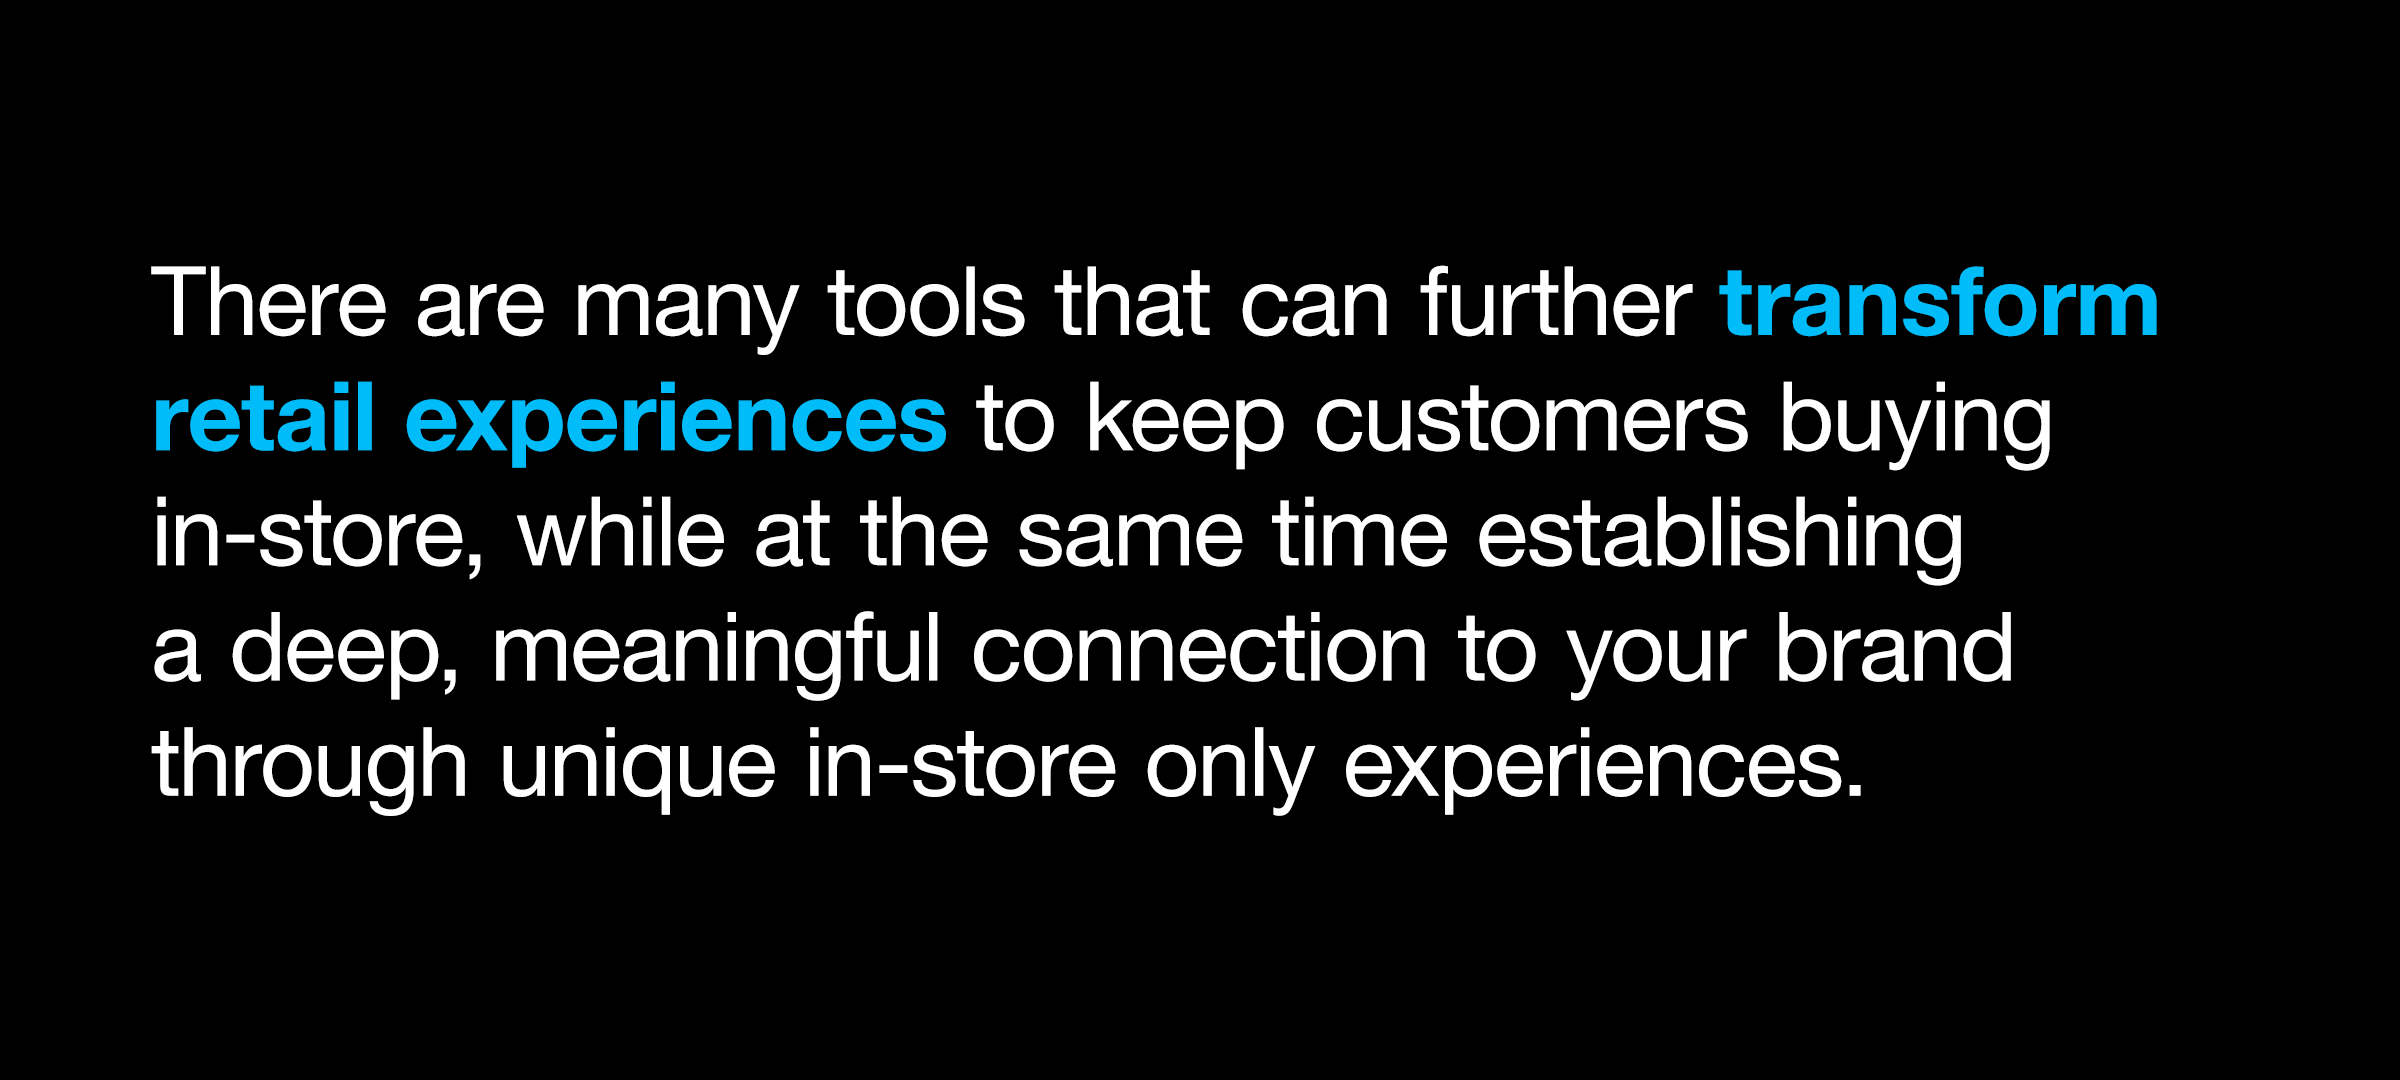 The-Modern-Retail-Platform-Blog-Quote-2400x1080.png